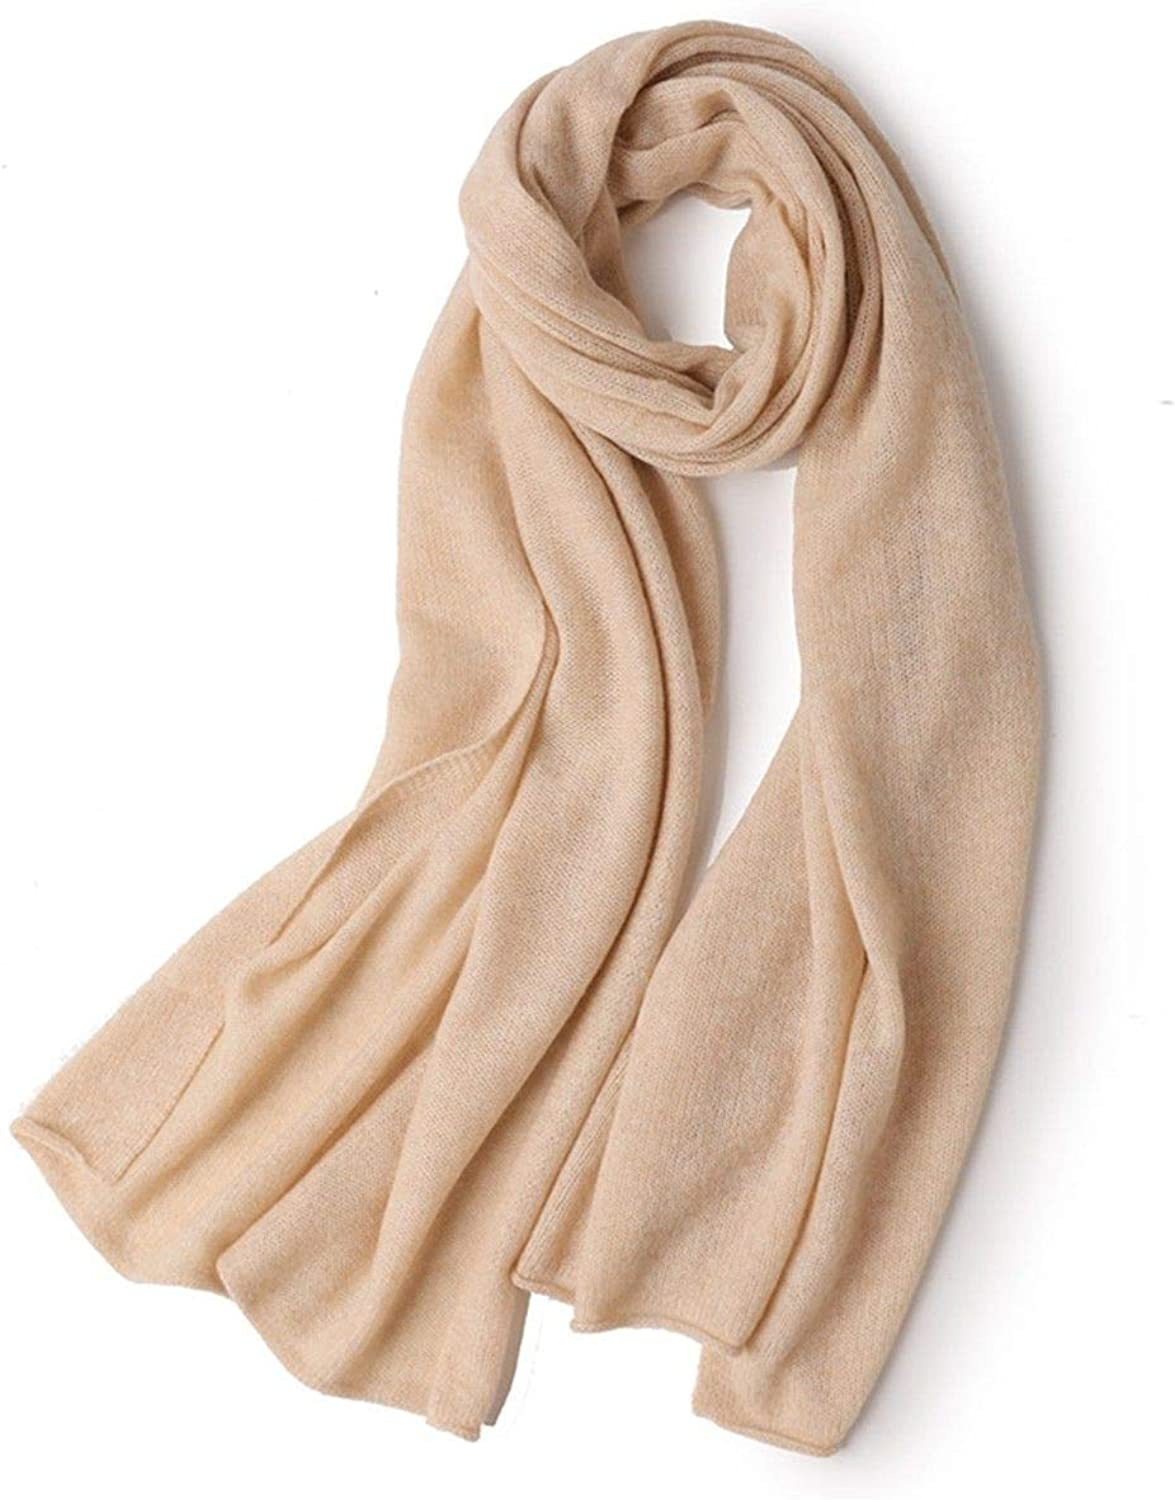 Scarf Knitted Pure Cashmere Women Fashion Solid color Thicken Long Shawl Dualuse, Beige